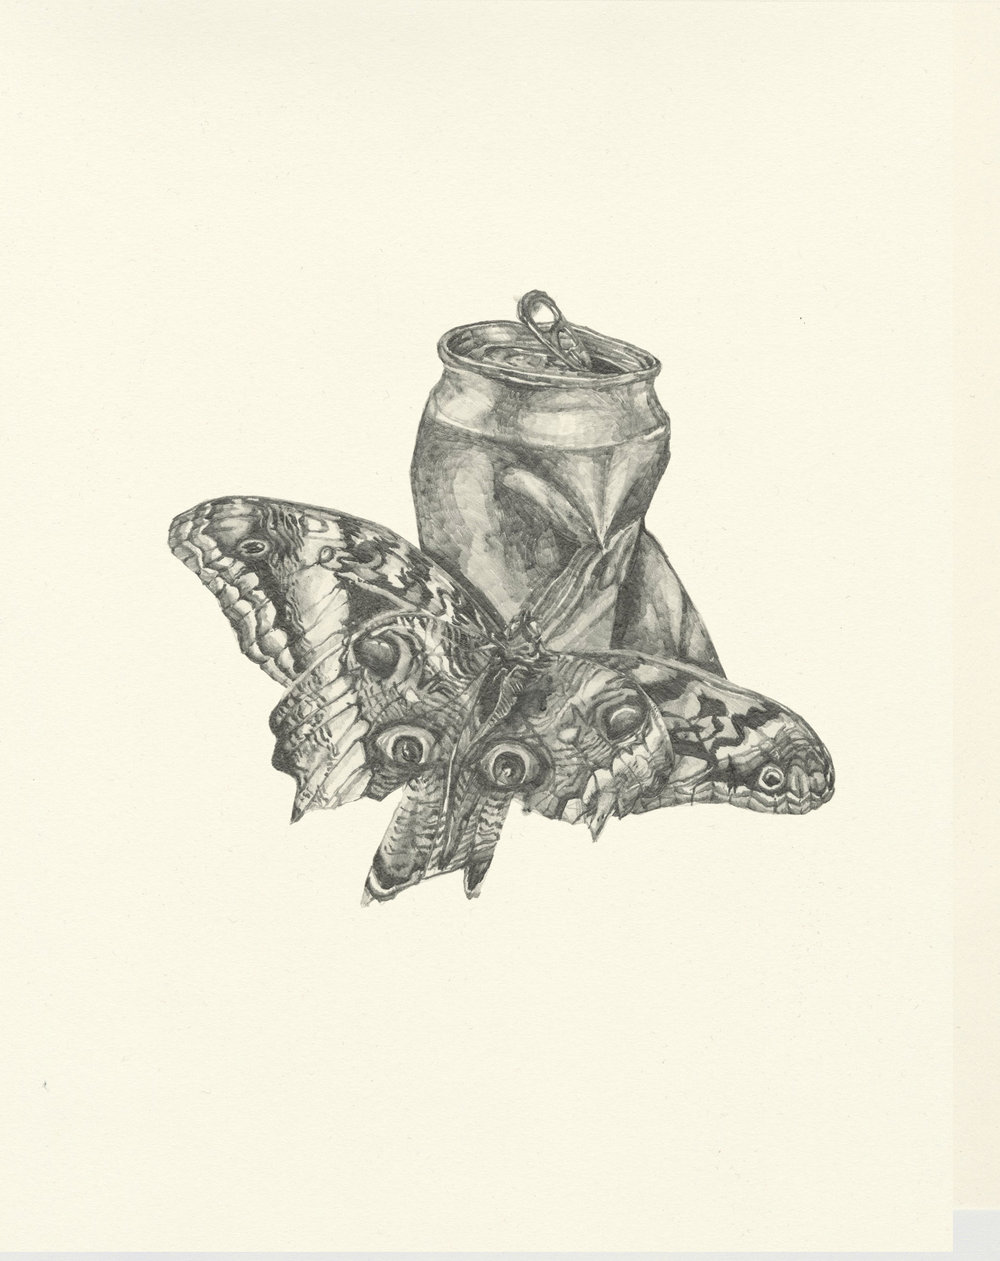 My Boyfriend is a Peacekeeper xi  | graphite on paper | 9.5INx12IN   Excerpt from My Boyfriend is a Peacekeeper Book:  I found that it felt even more empty so I was happy at first when two owl moths took shelter in its newly exposed cavity. The creatures were enormous, but comfortable, and had these eyes that stared at you a violent intensity, like a mad Courbet.